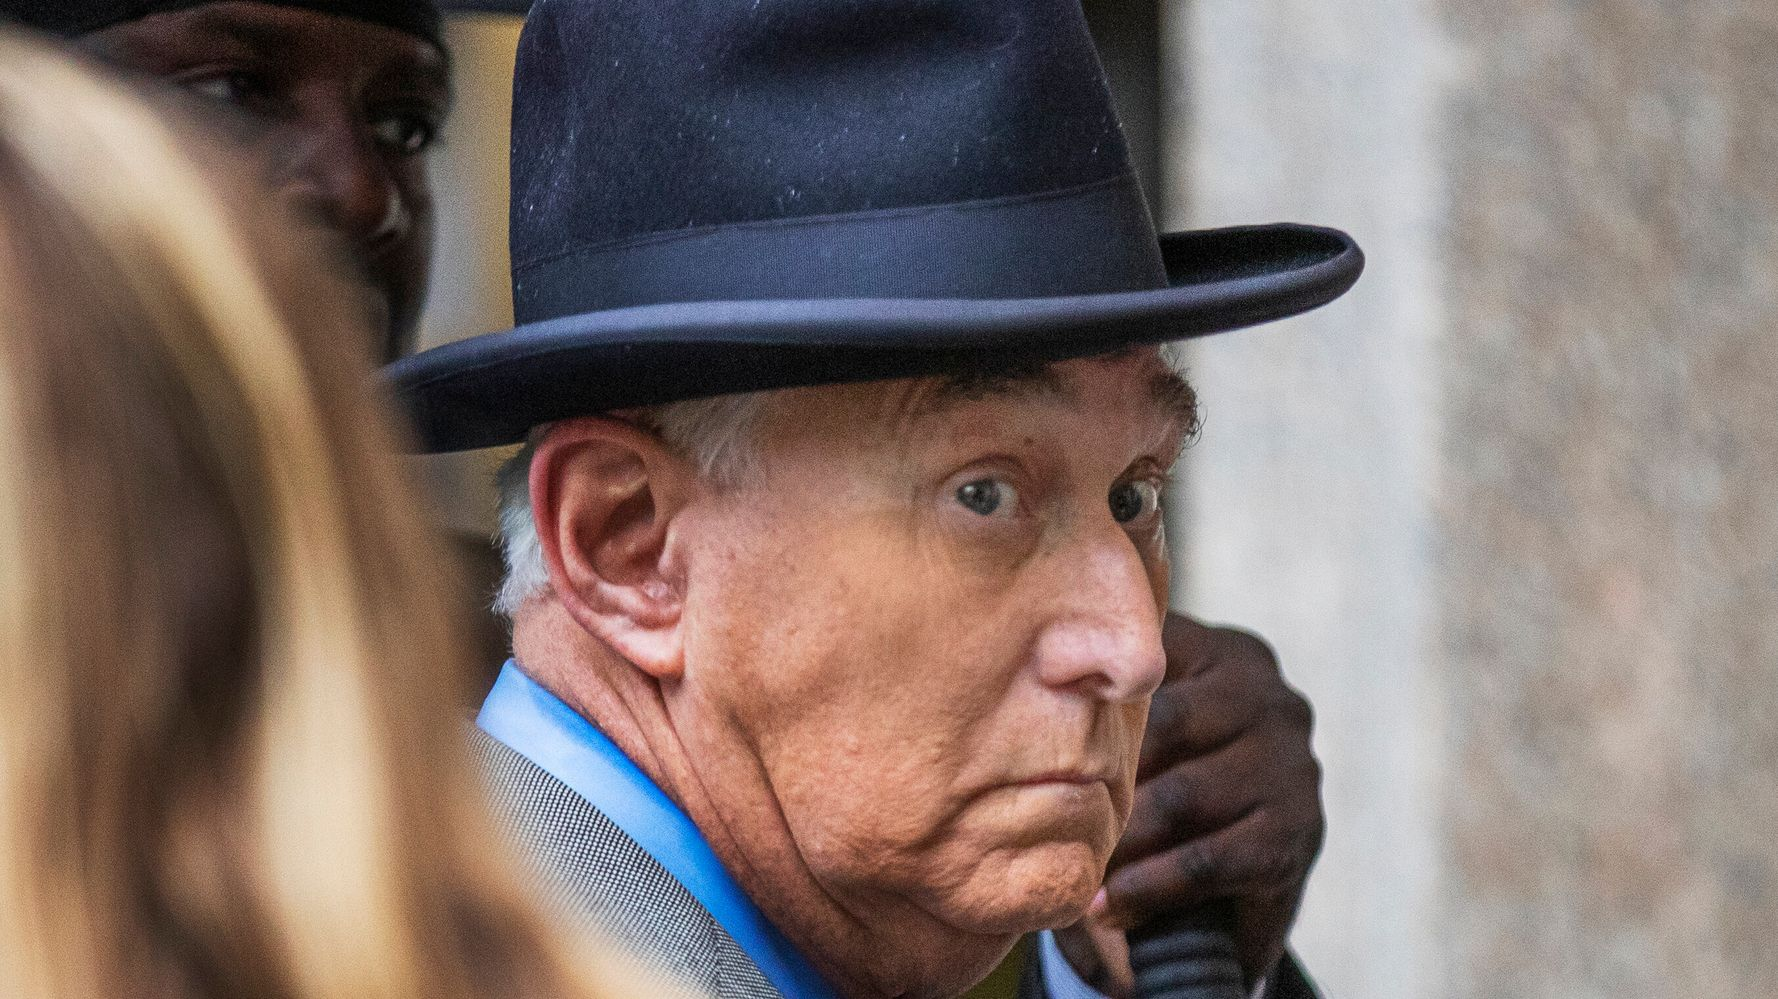 Westlake Legal Group 5e4c109023000030000be308 Trump Says Roger Stone's Conviction 'Should Be Thrown Out'